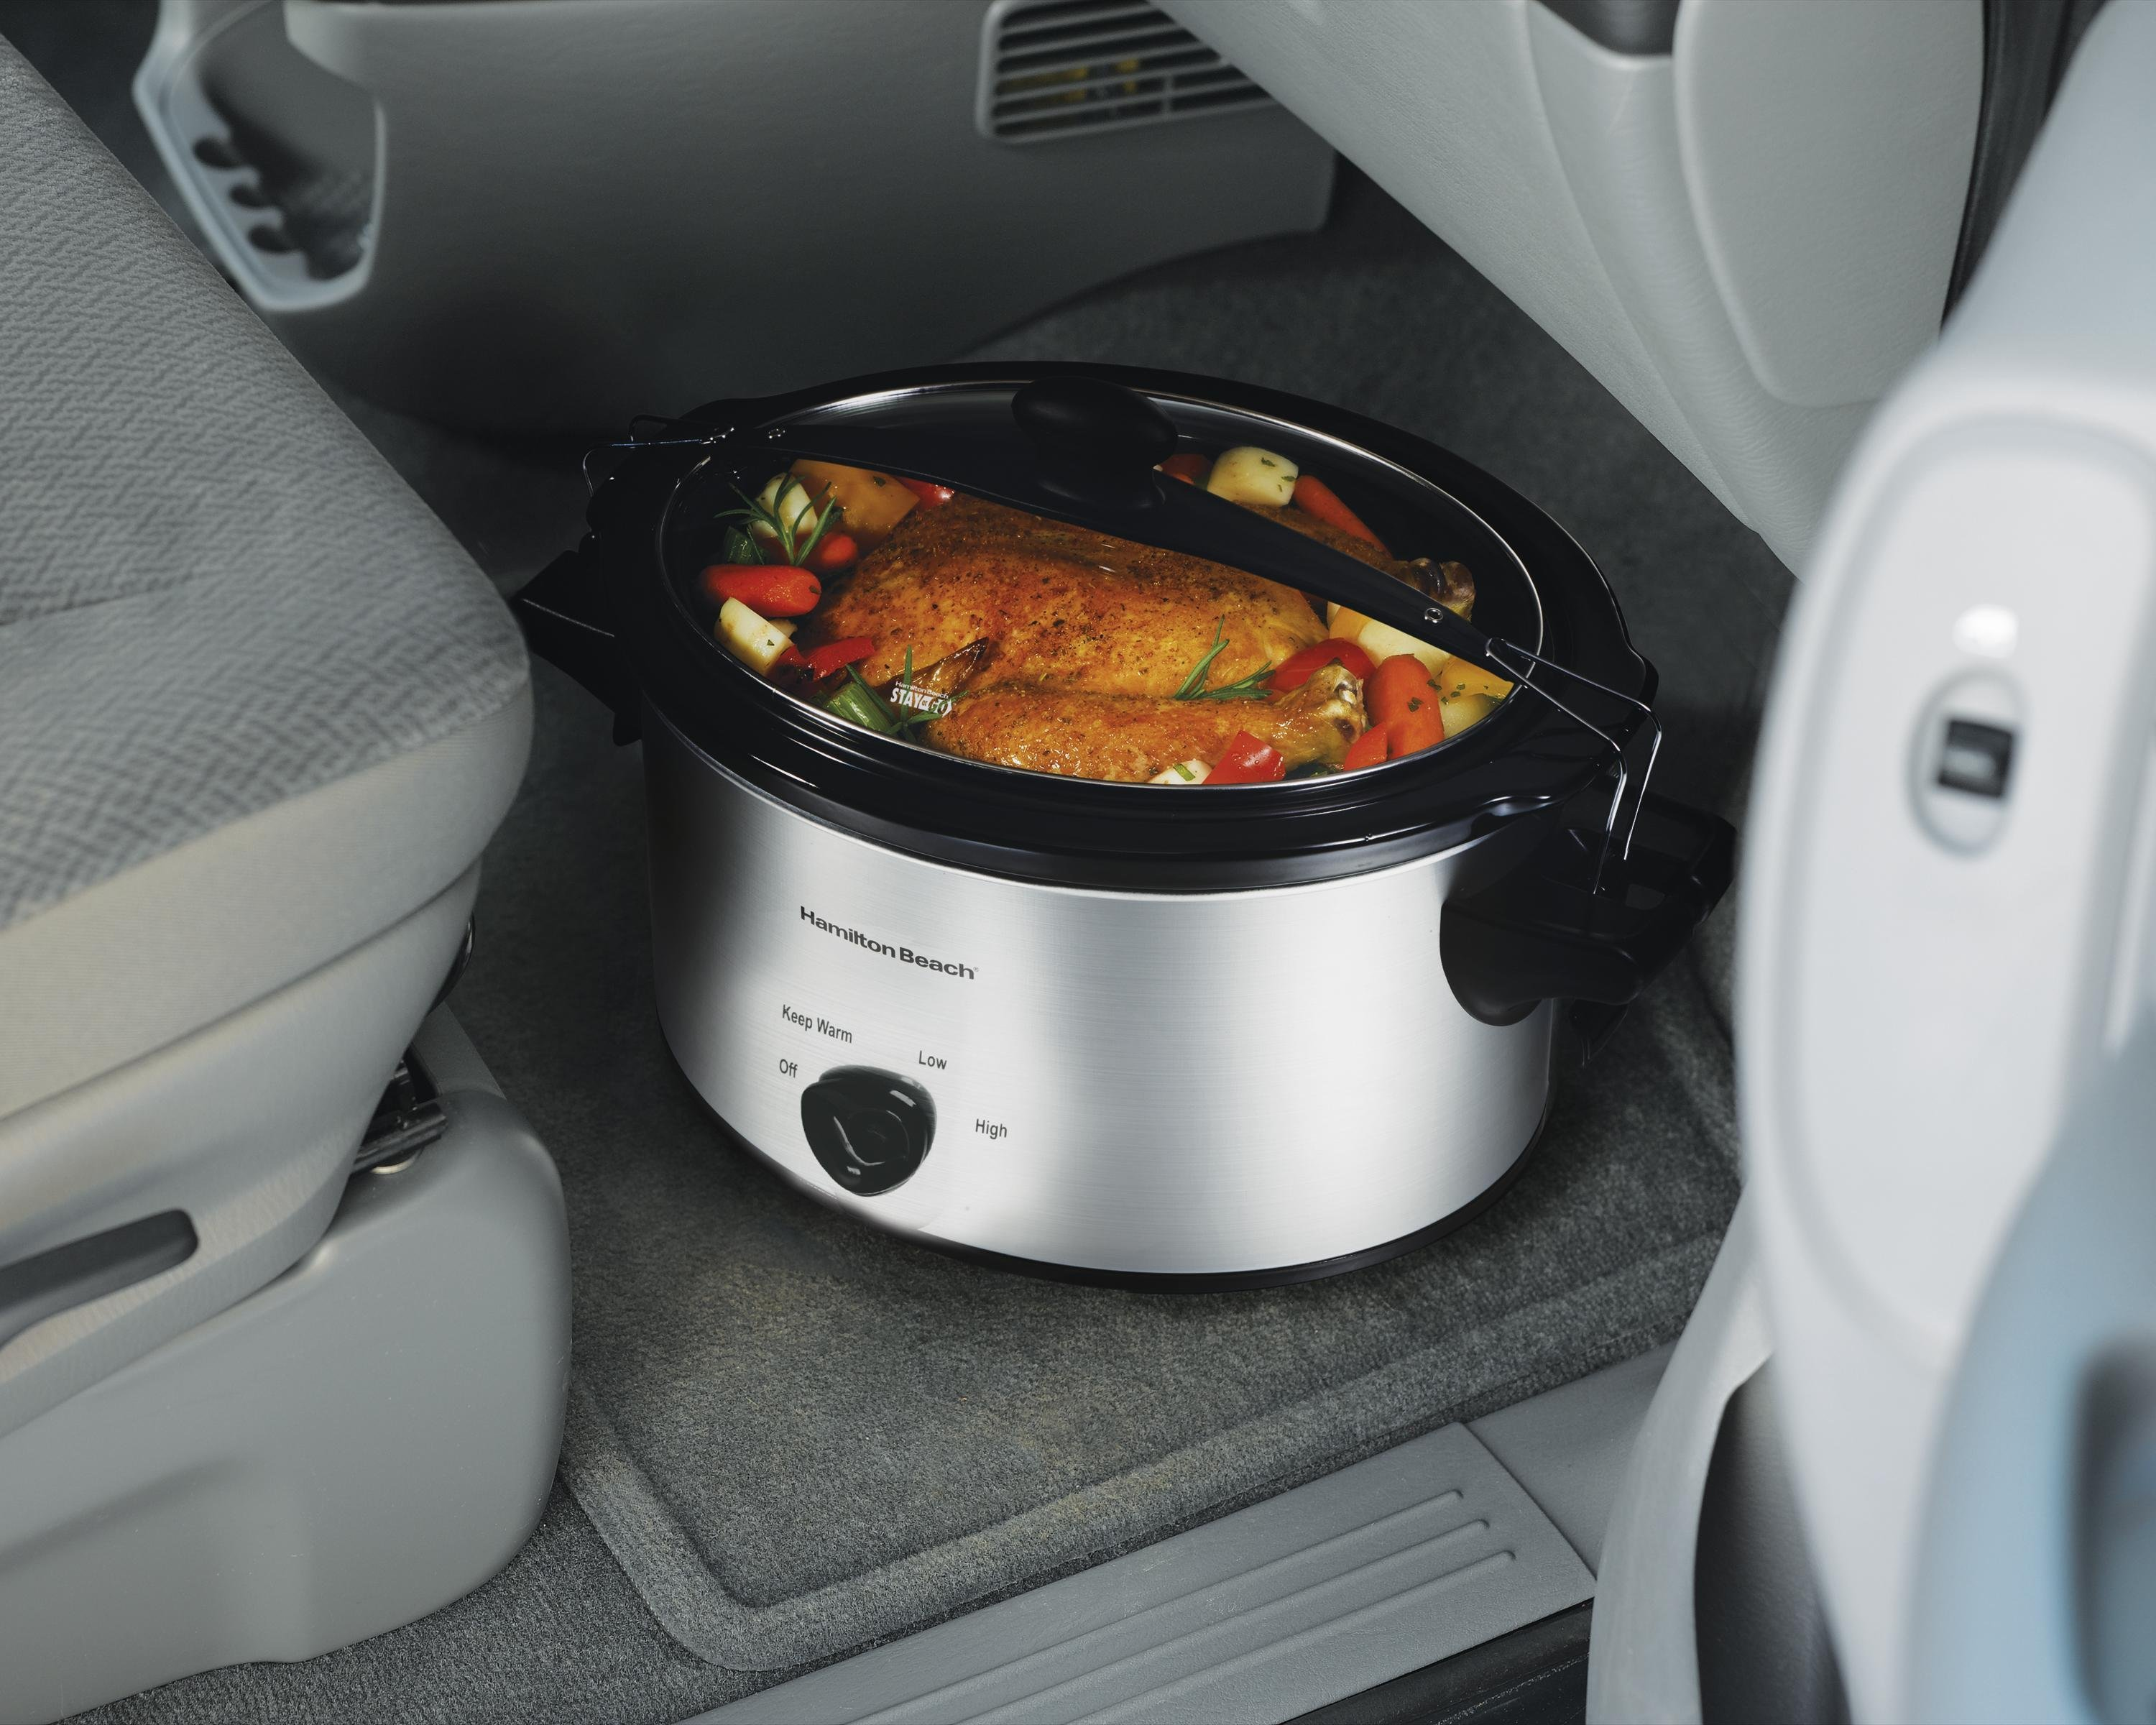 what size is rival slow cooker model 38501 manual